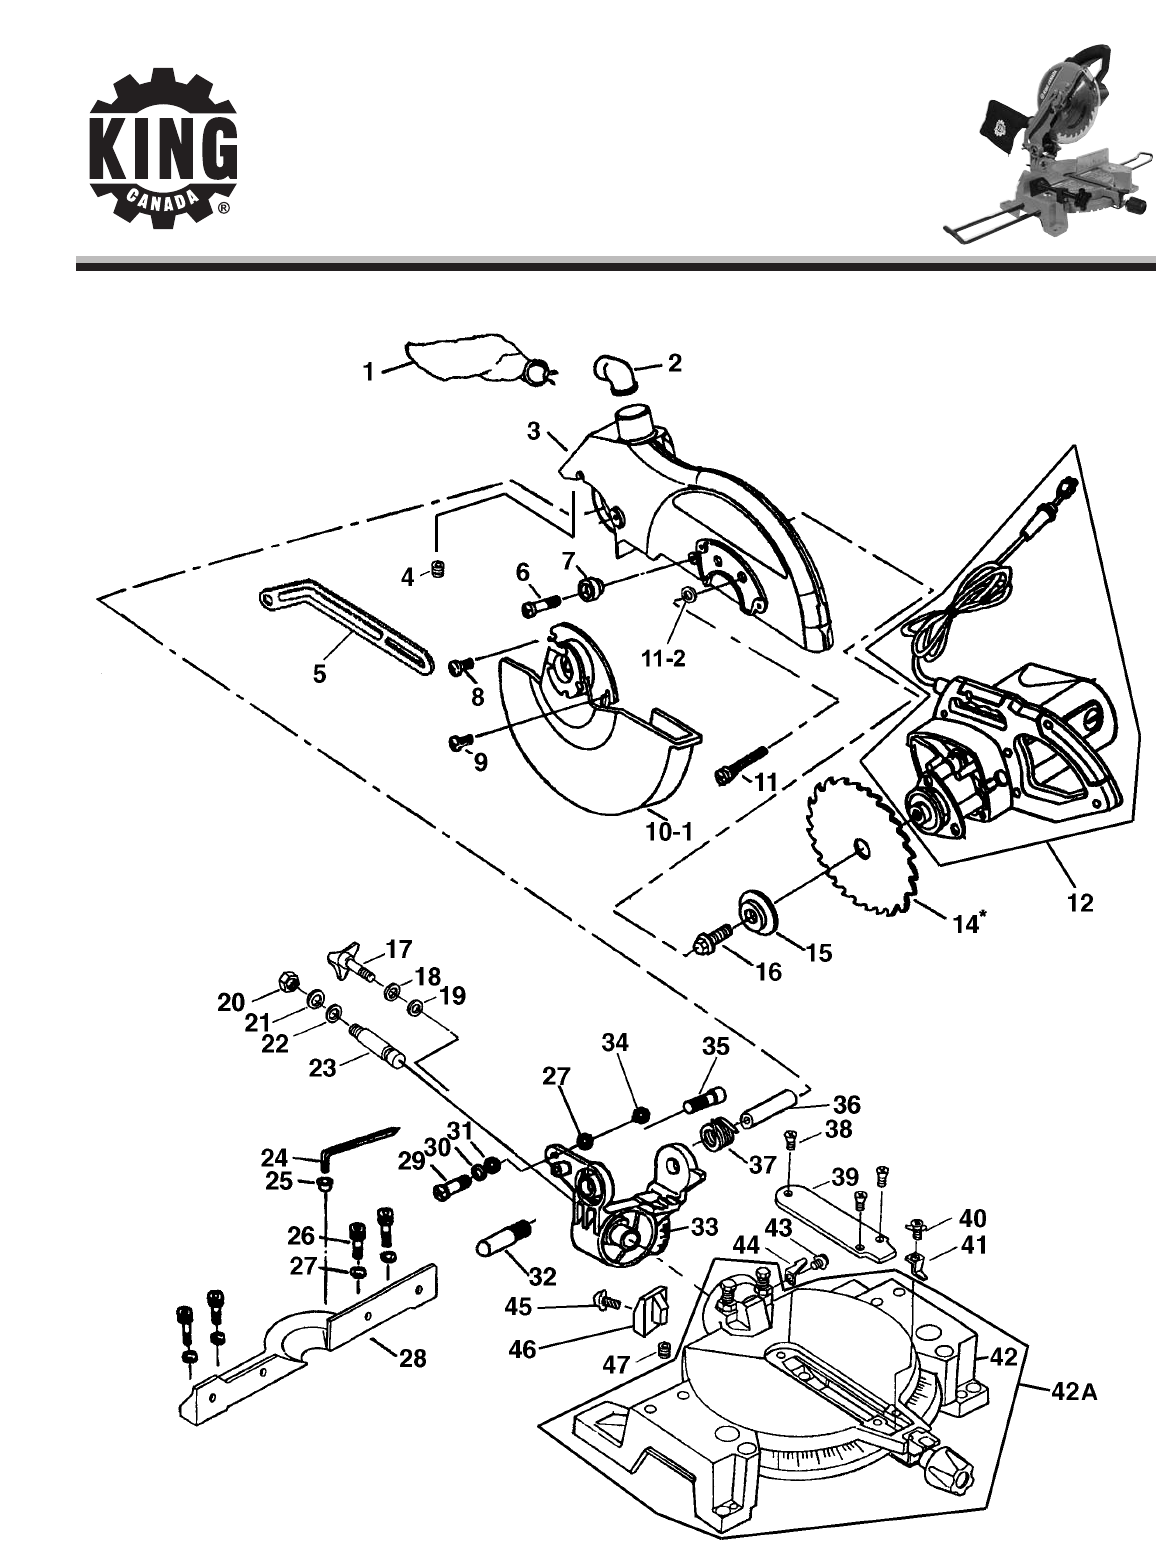 Toyota Venza Engine Diagram likewise Washer Motor Wiring Diagrams further Hobart 1612 Parts Diagram besides C3RvbmUgbWl4ZXIgcGFydHMgYnJlYW b3du furthermore Welder 220 Single Phase Wiring Diagram. on hobart mixer motor wiring diagram